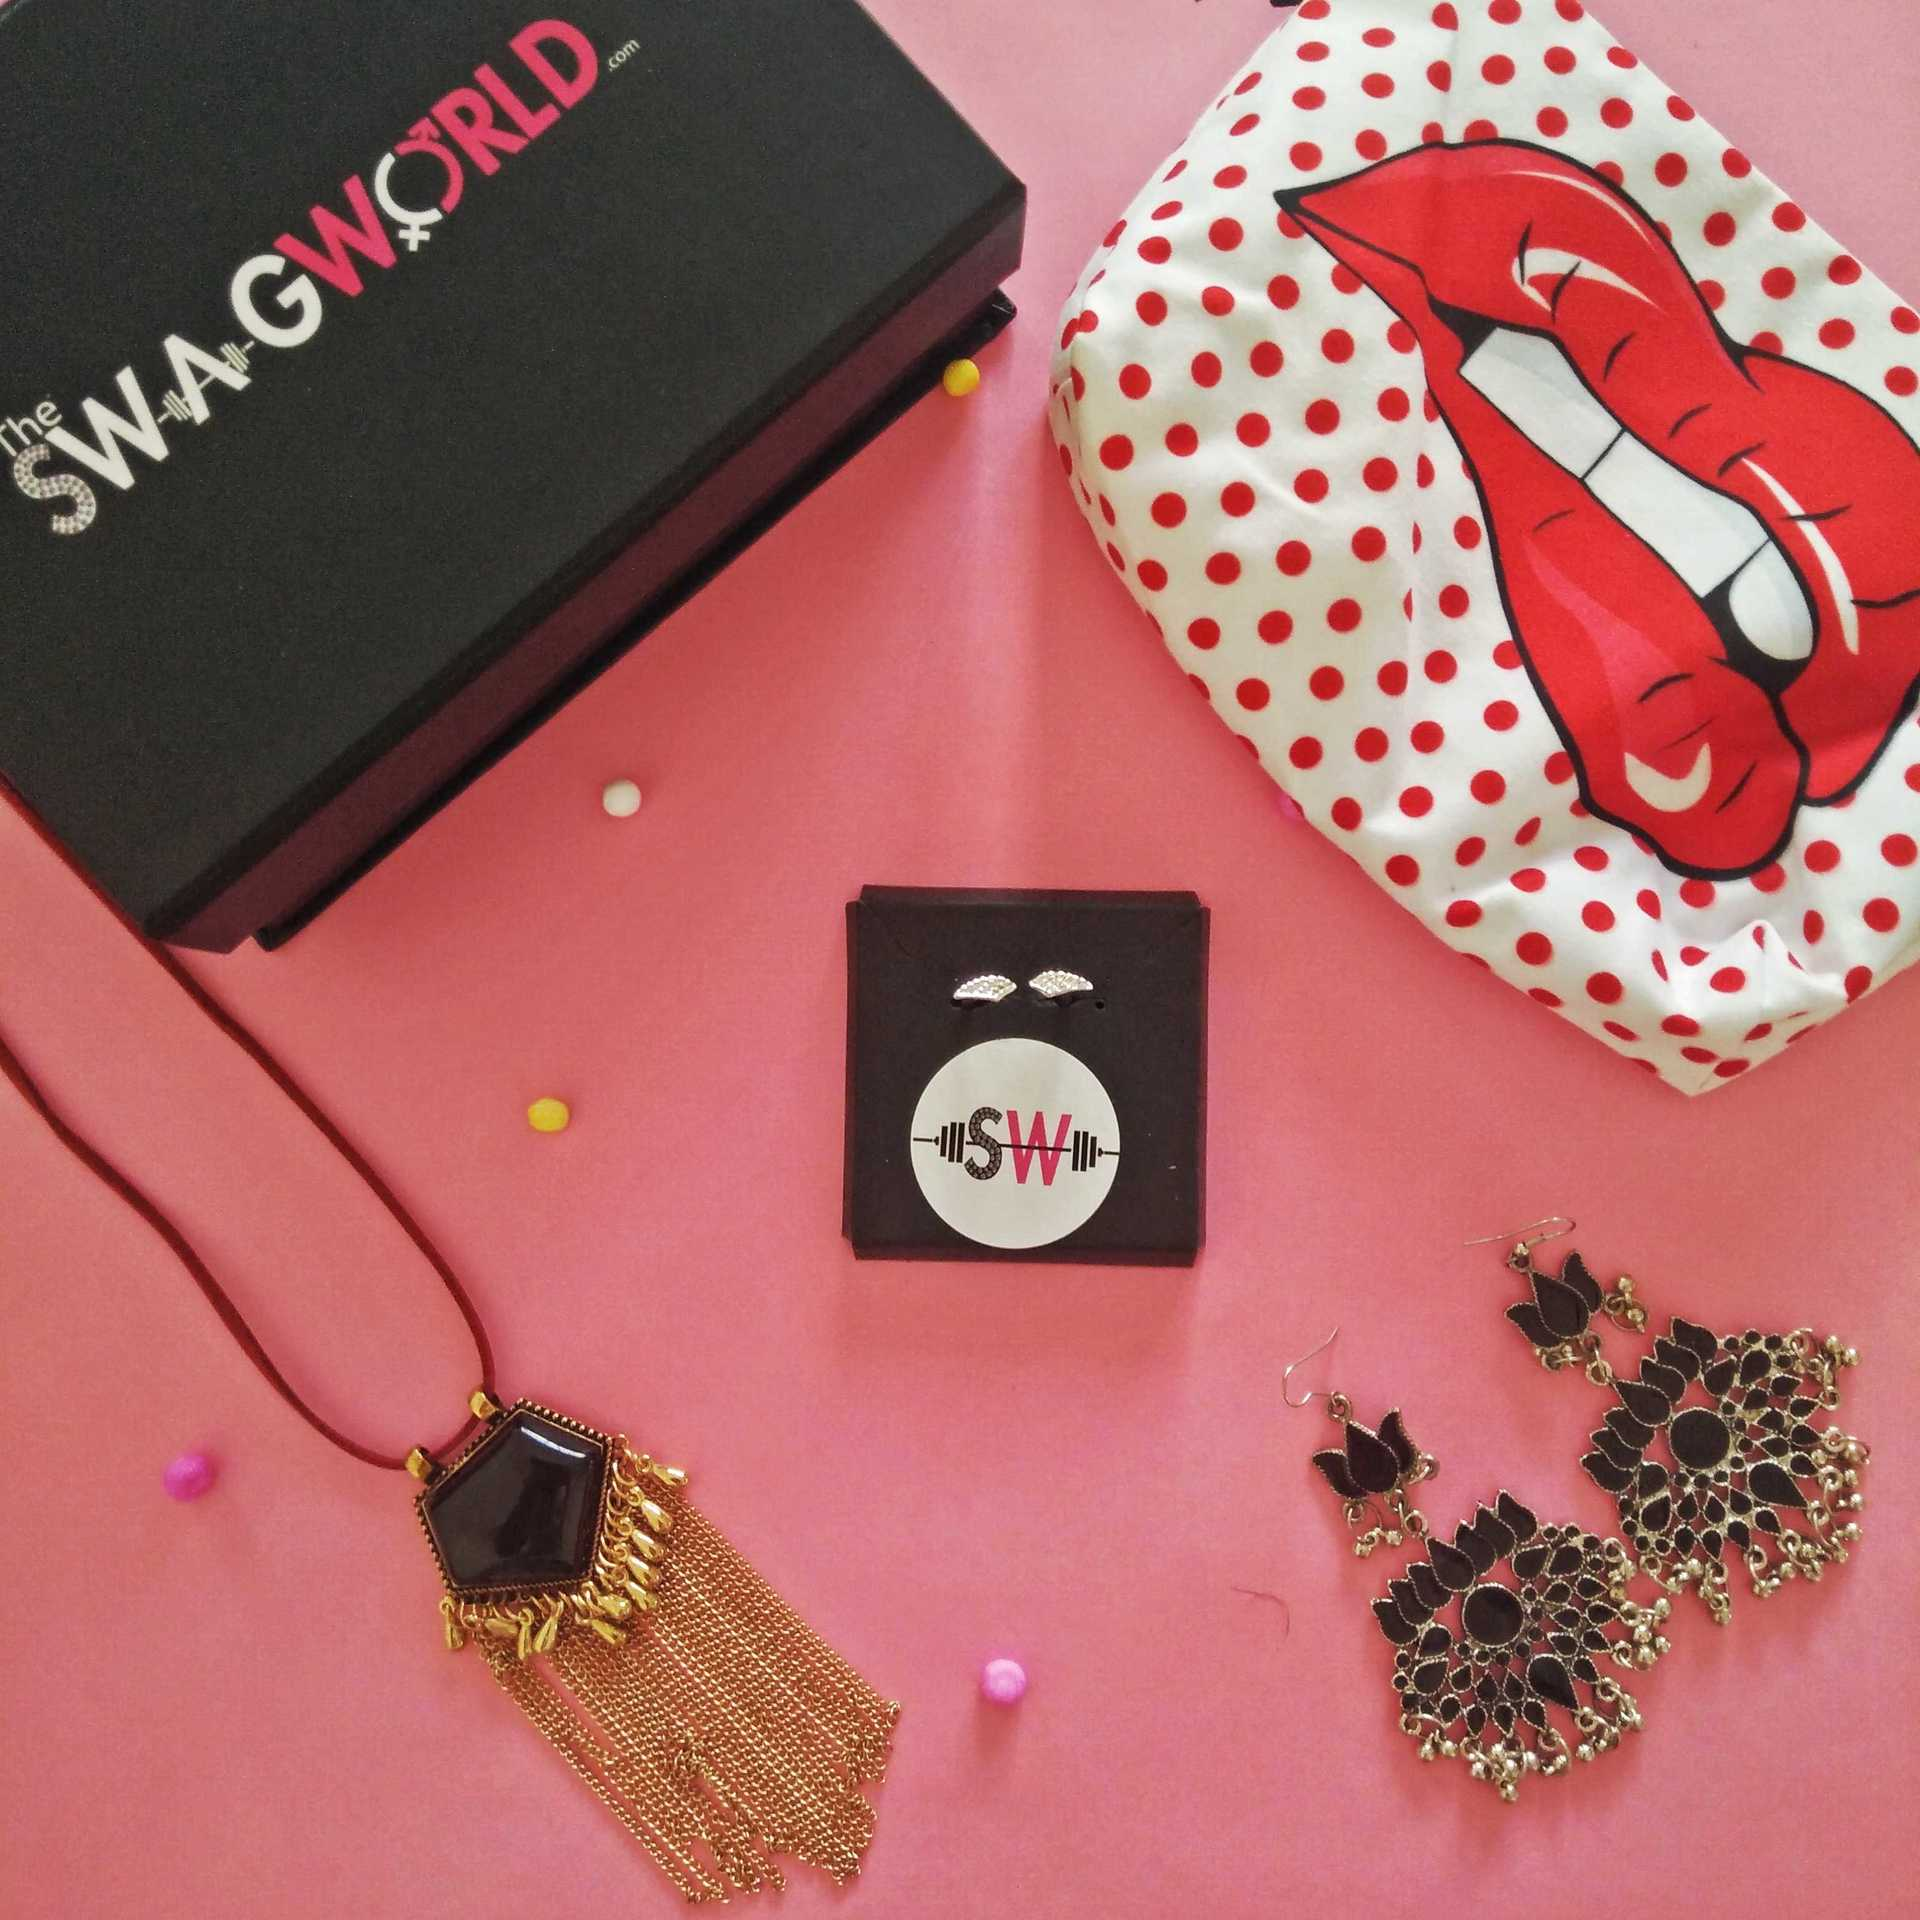 The Swag World - Princess Swag Box  image